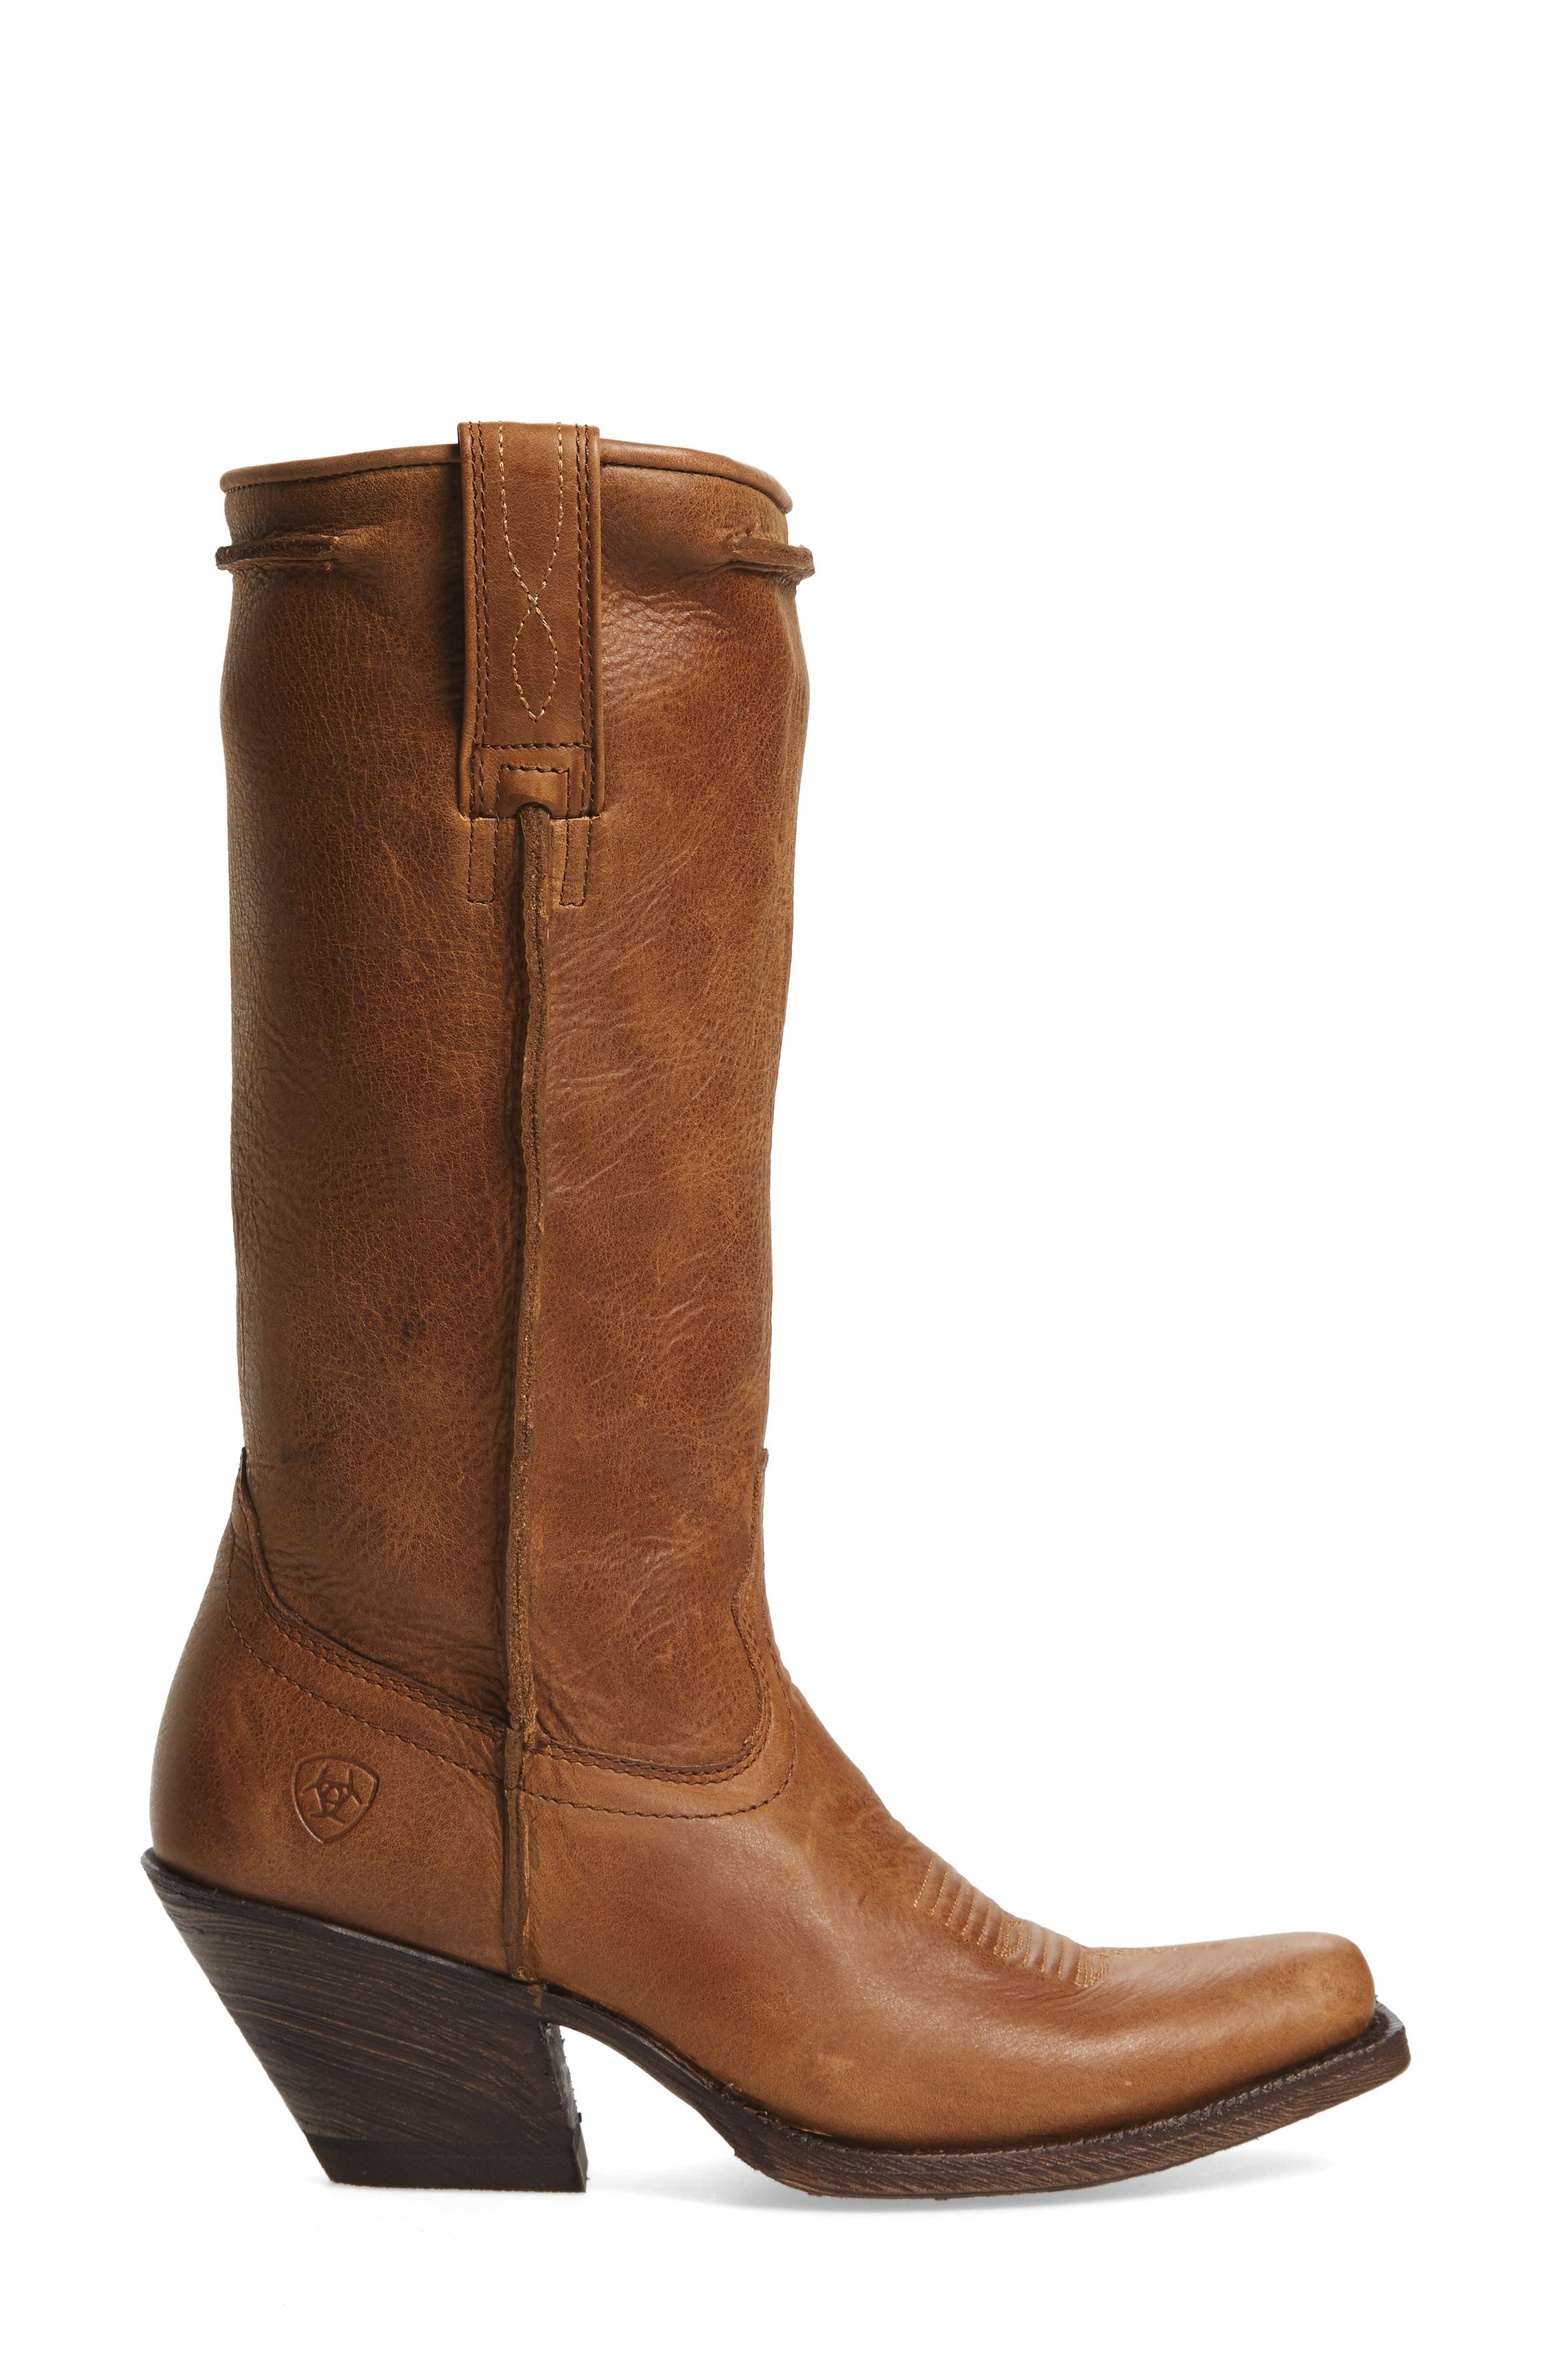 Rowan Stovepipe Western Boot,                             Alternate thumbnail 3, color,                             Southern Tan Leather